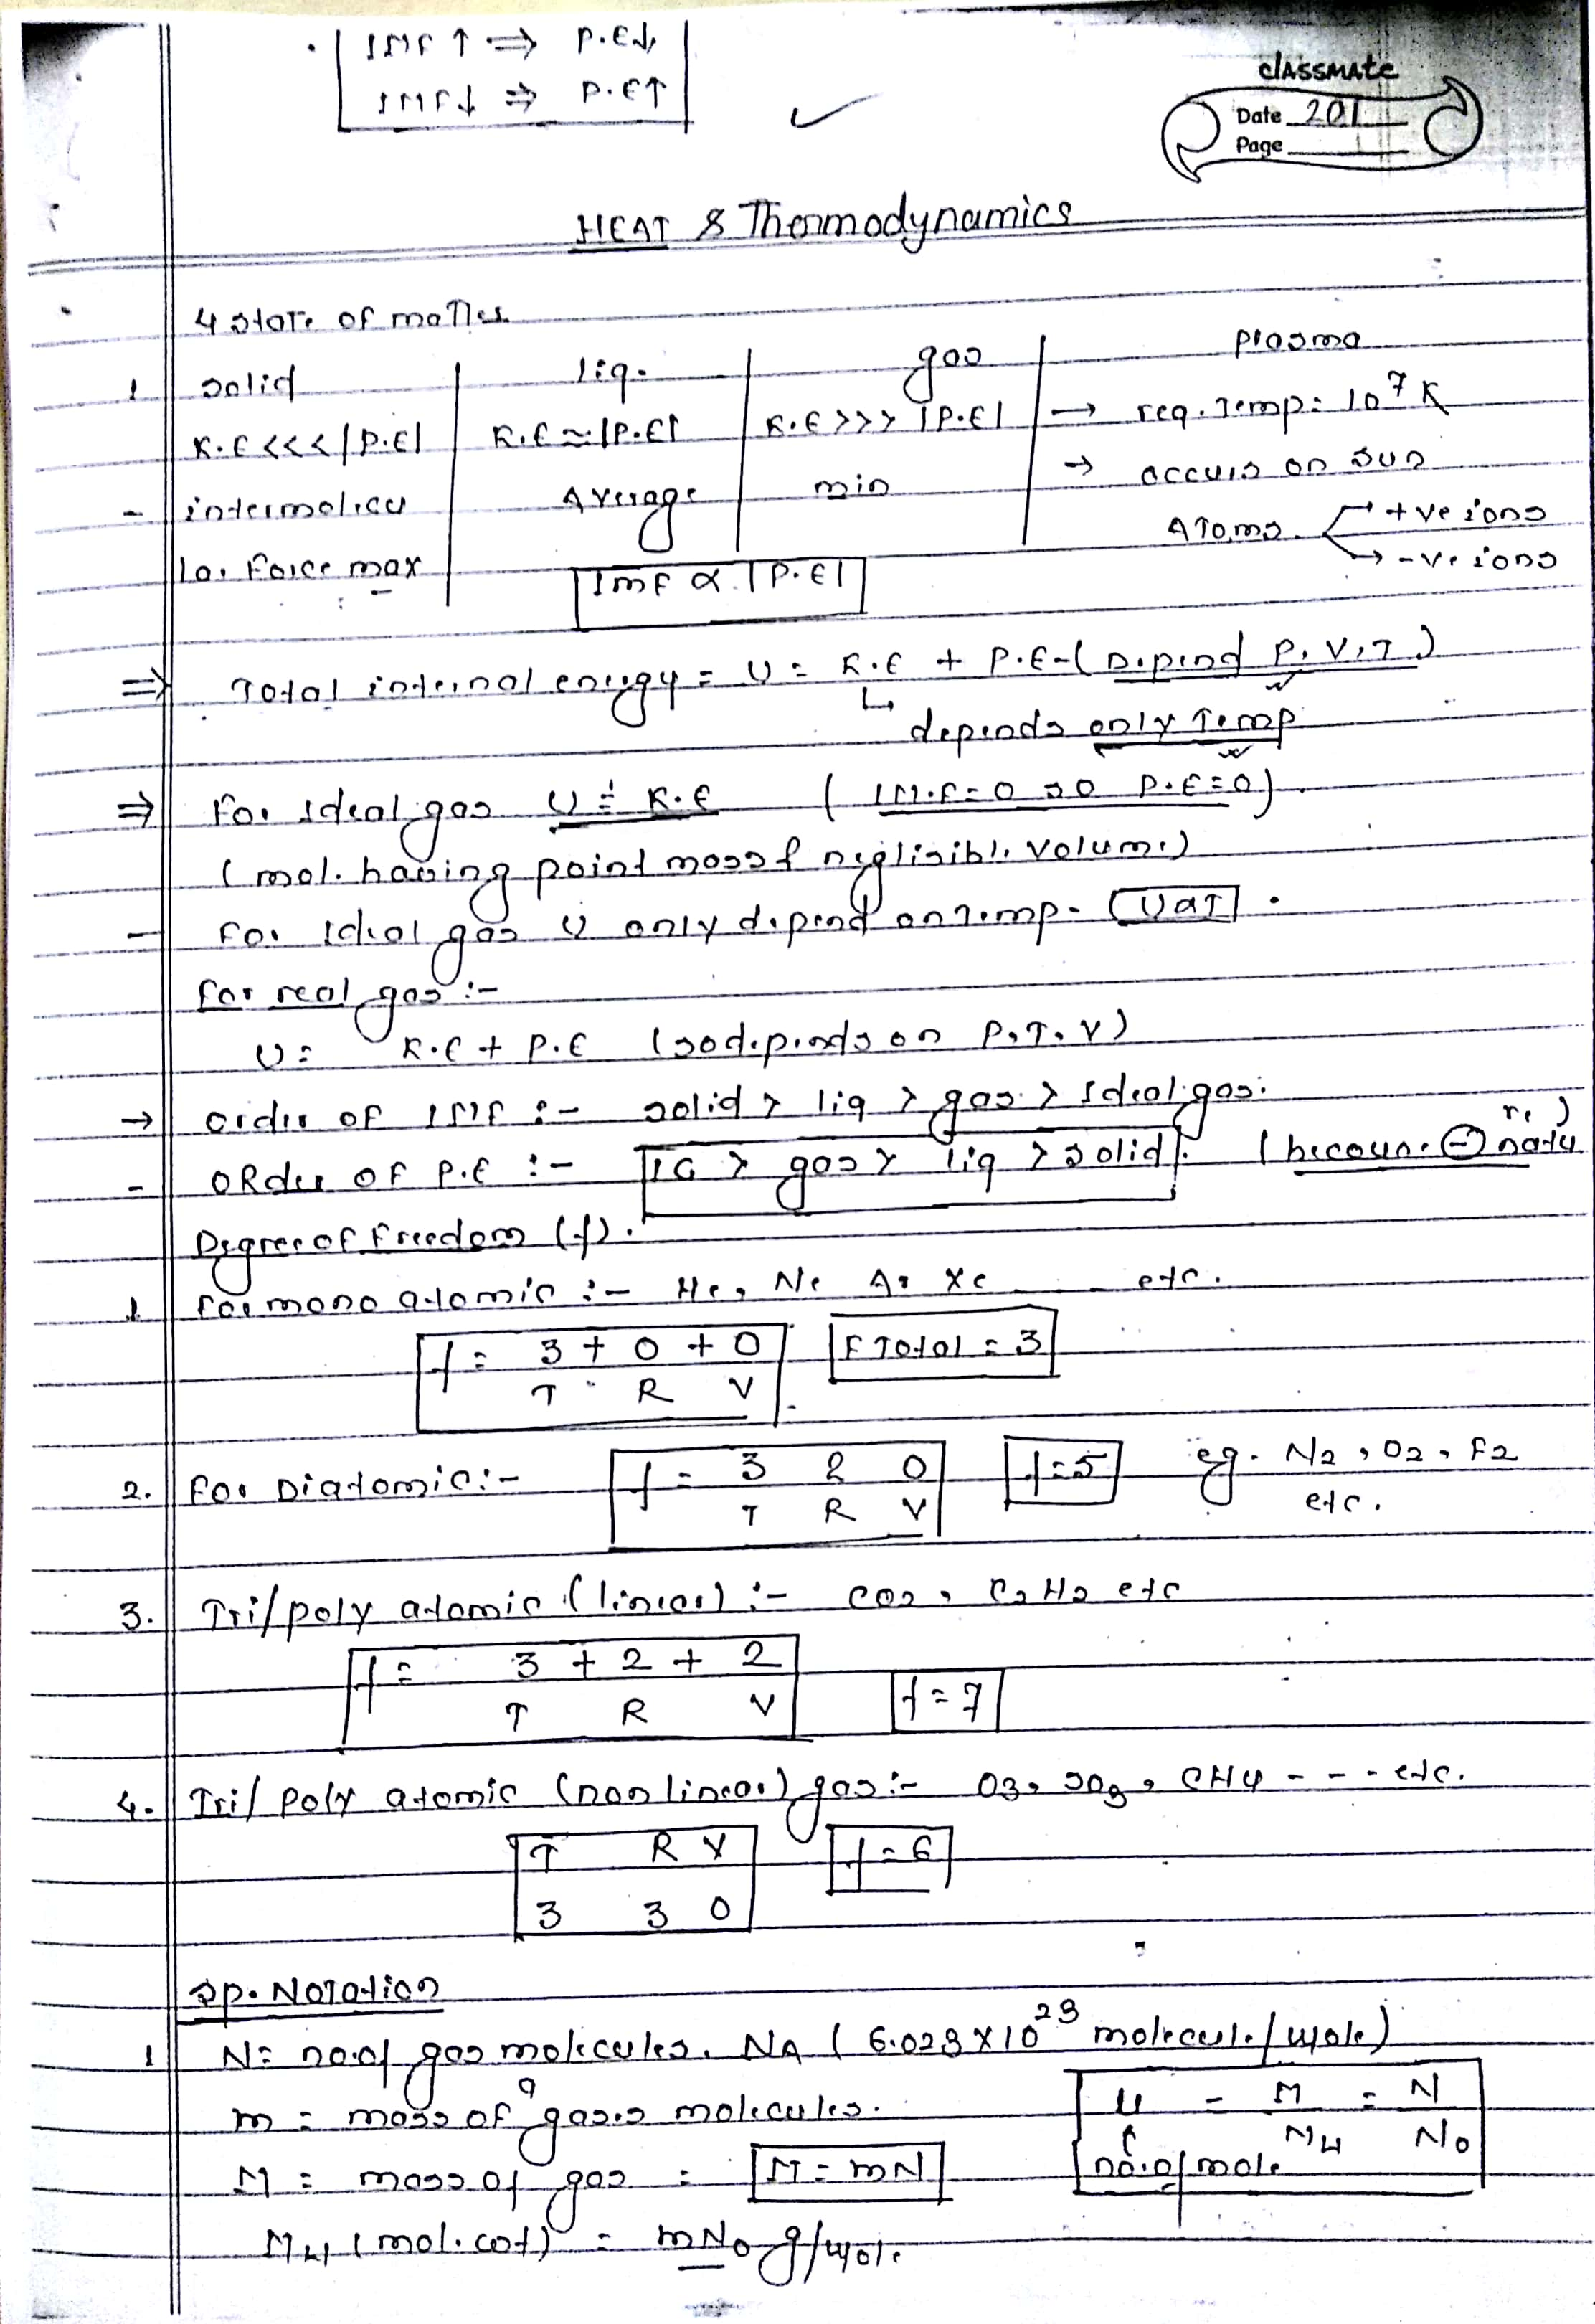 Thermodynamics Handwritten notes (1)